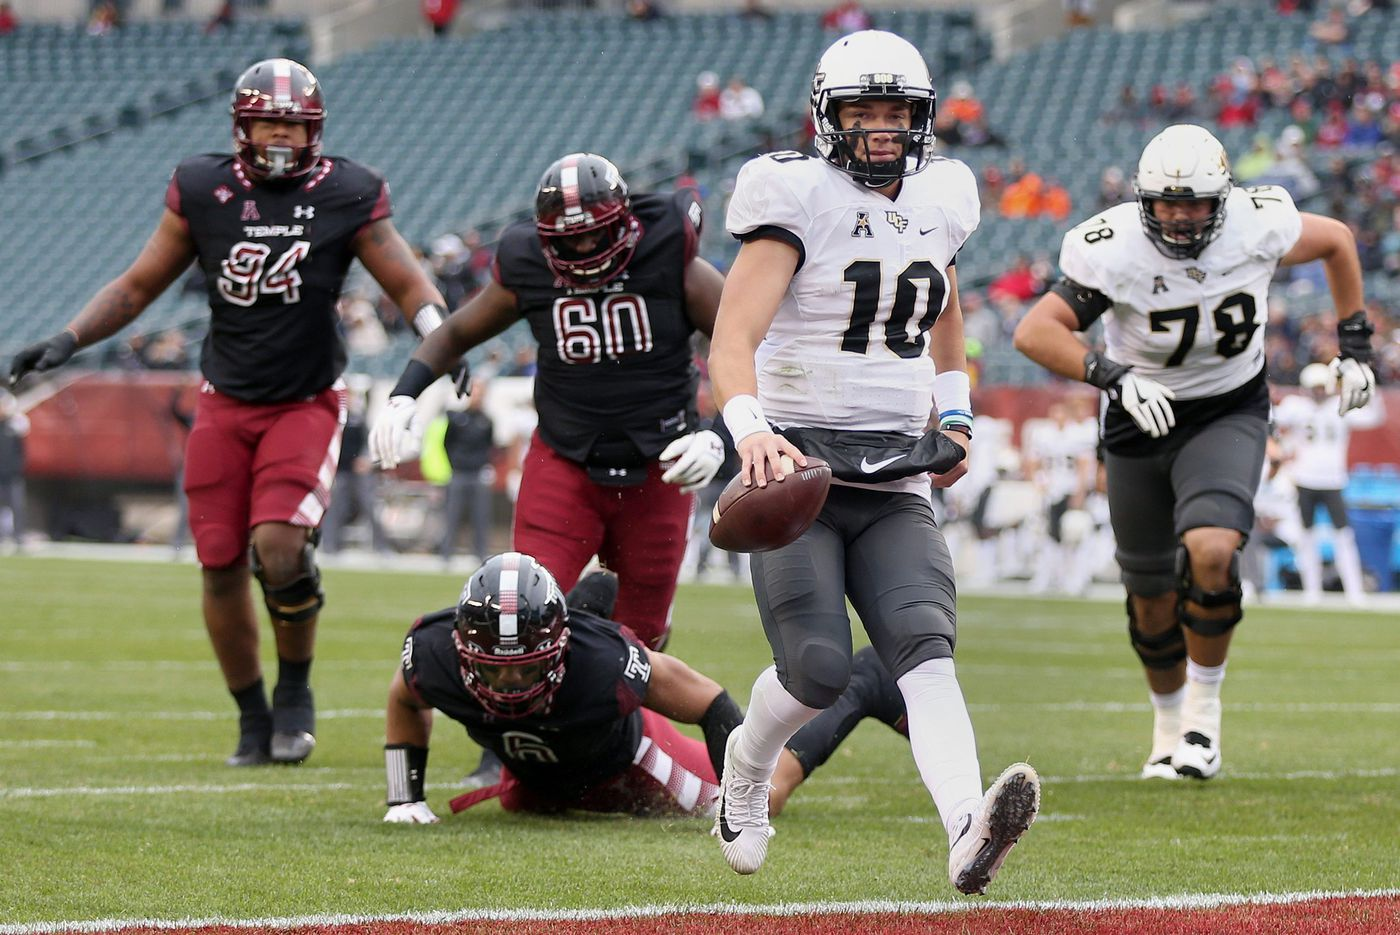 American Athletic Association football preview: Will UCF have another parade?